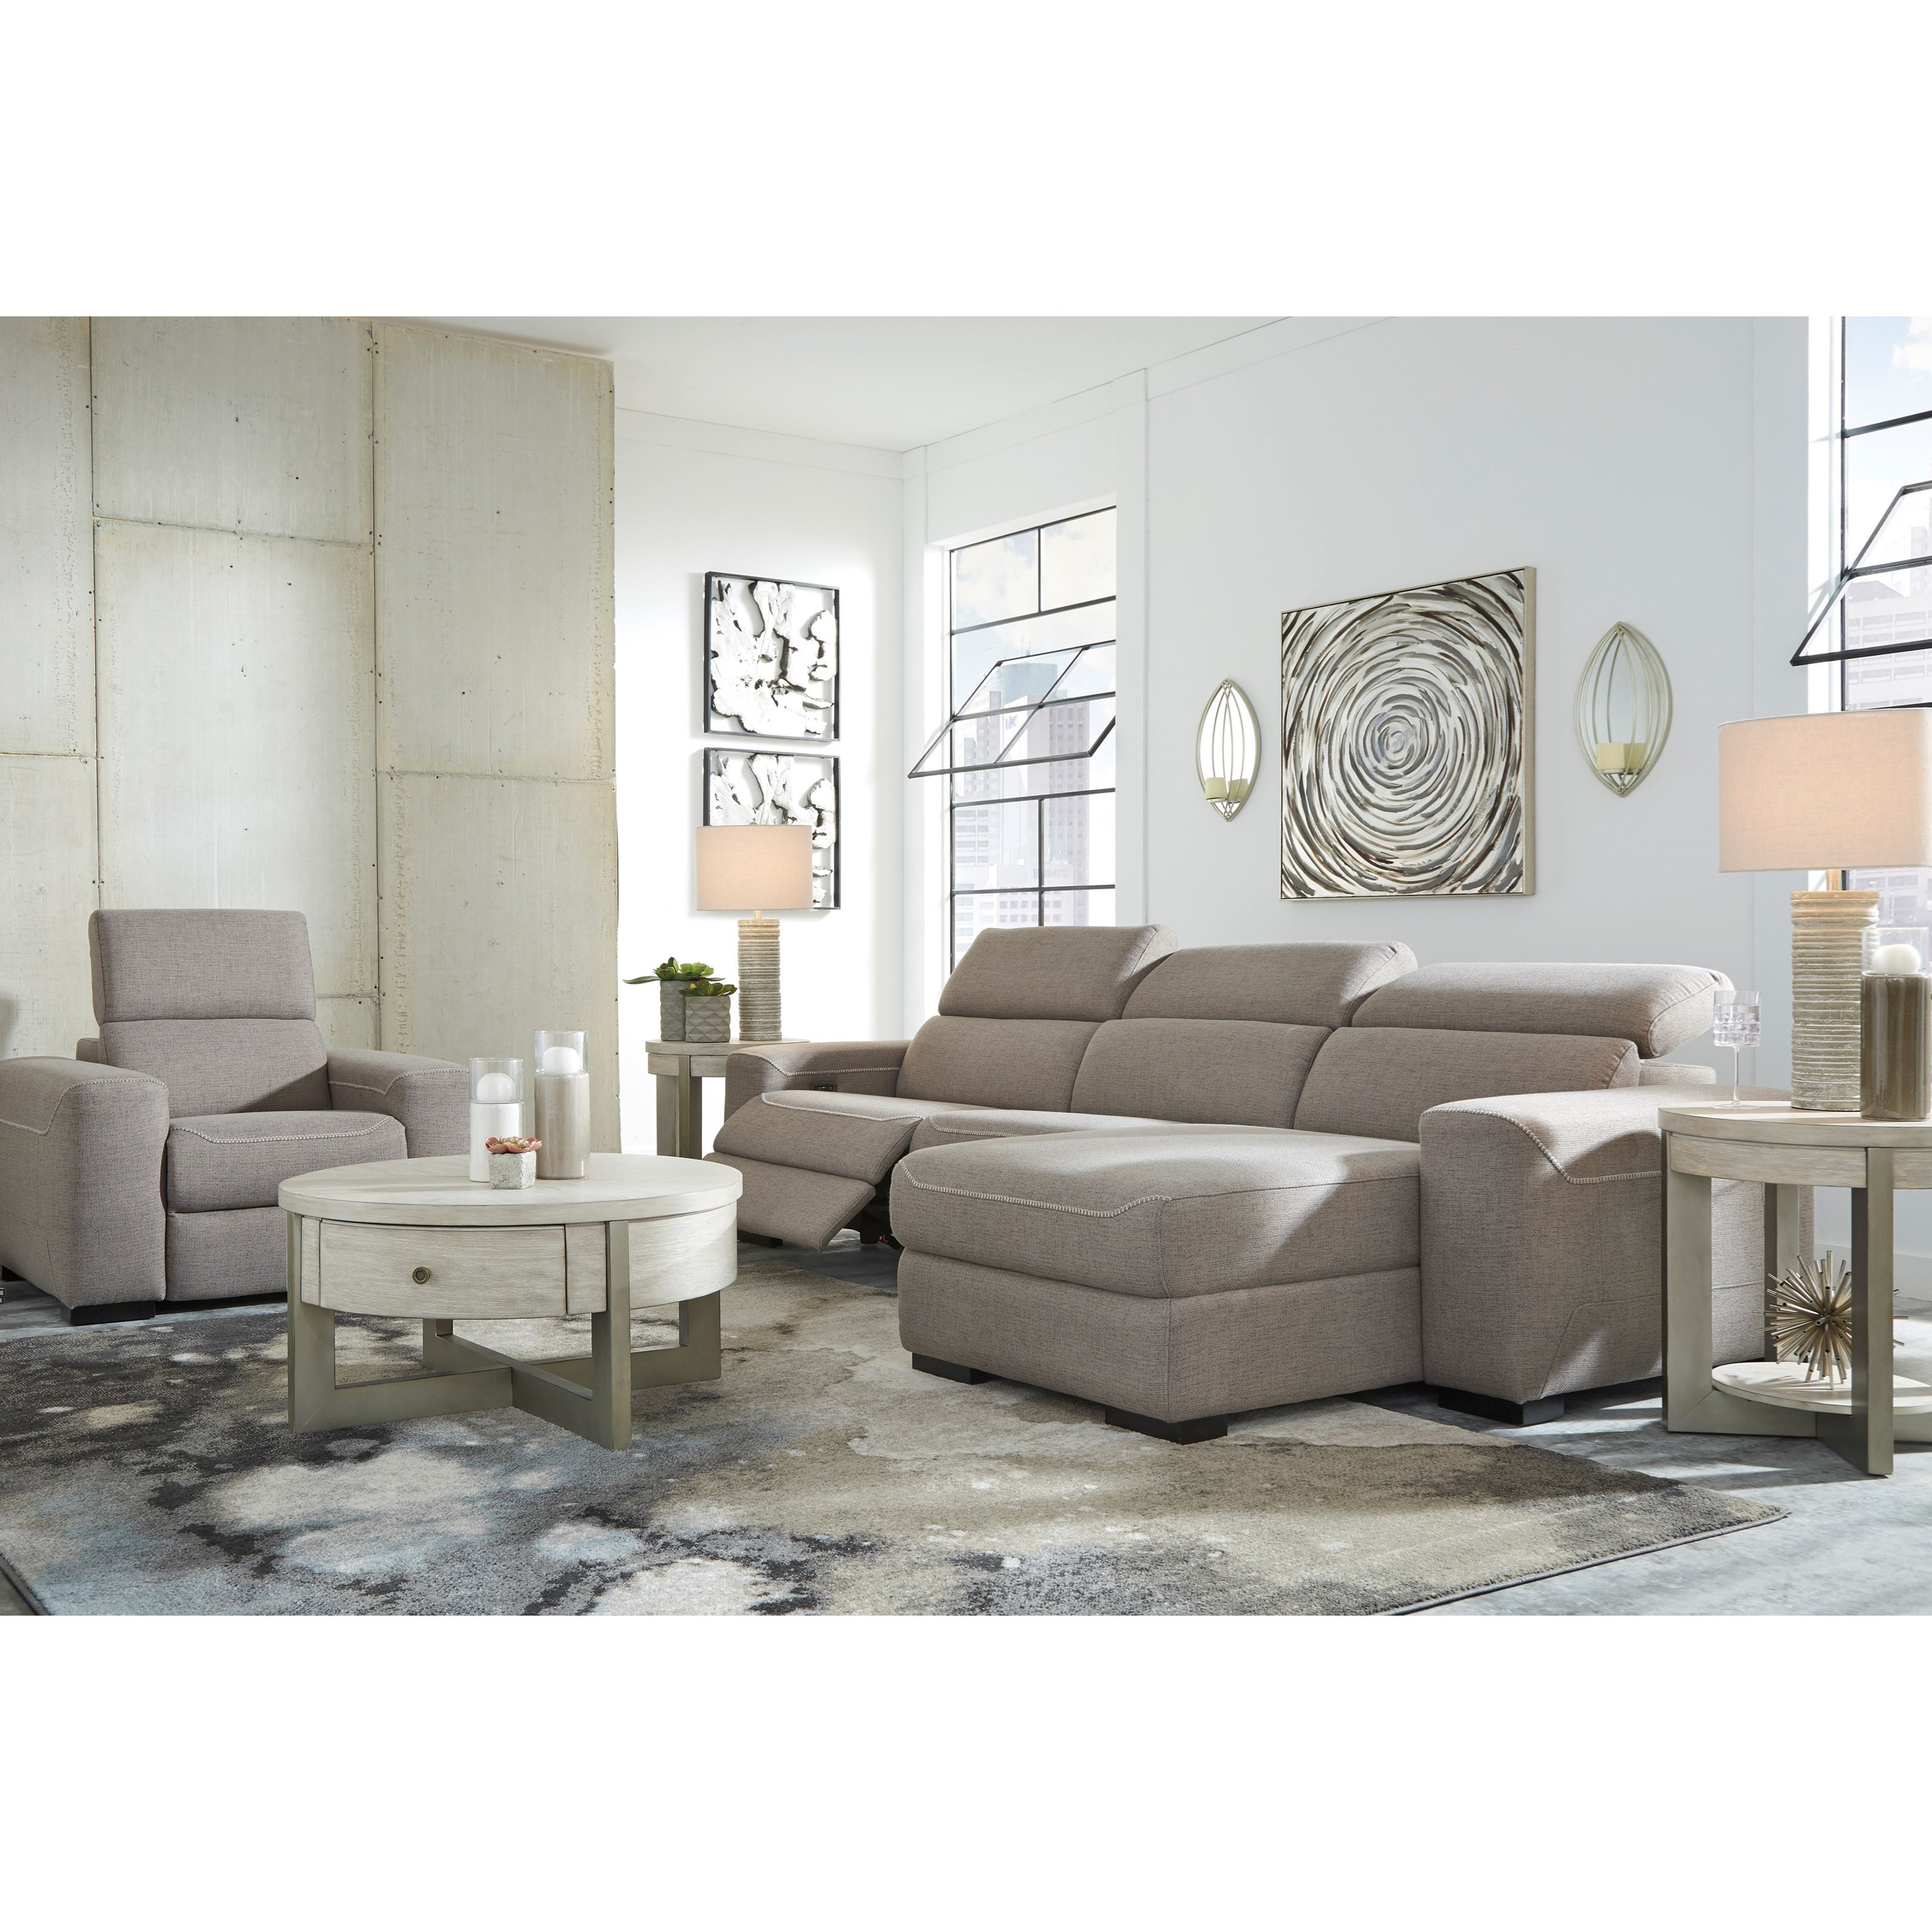 Mabton Power Reclining Living Room Group by Signature Design by Ashley at Catalog Outlet